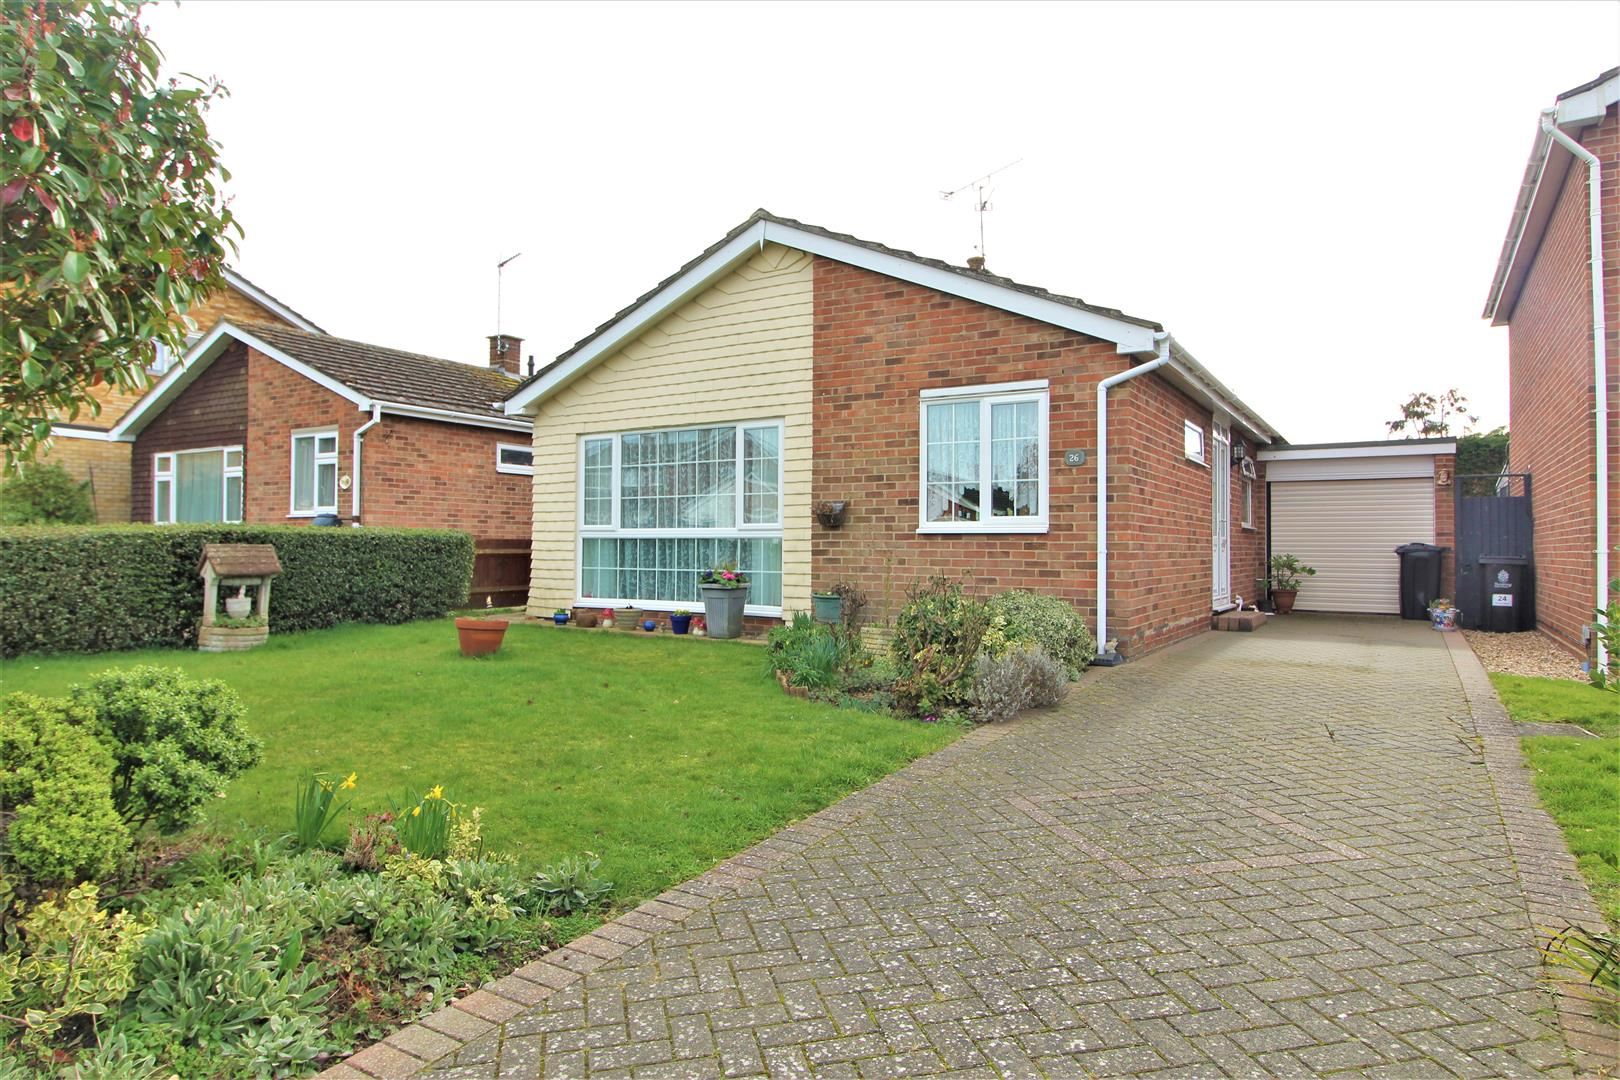 Horsey Road, Kirby-Le-Soken, Essex, CO13 0DZ